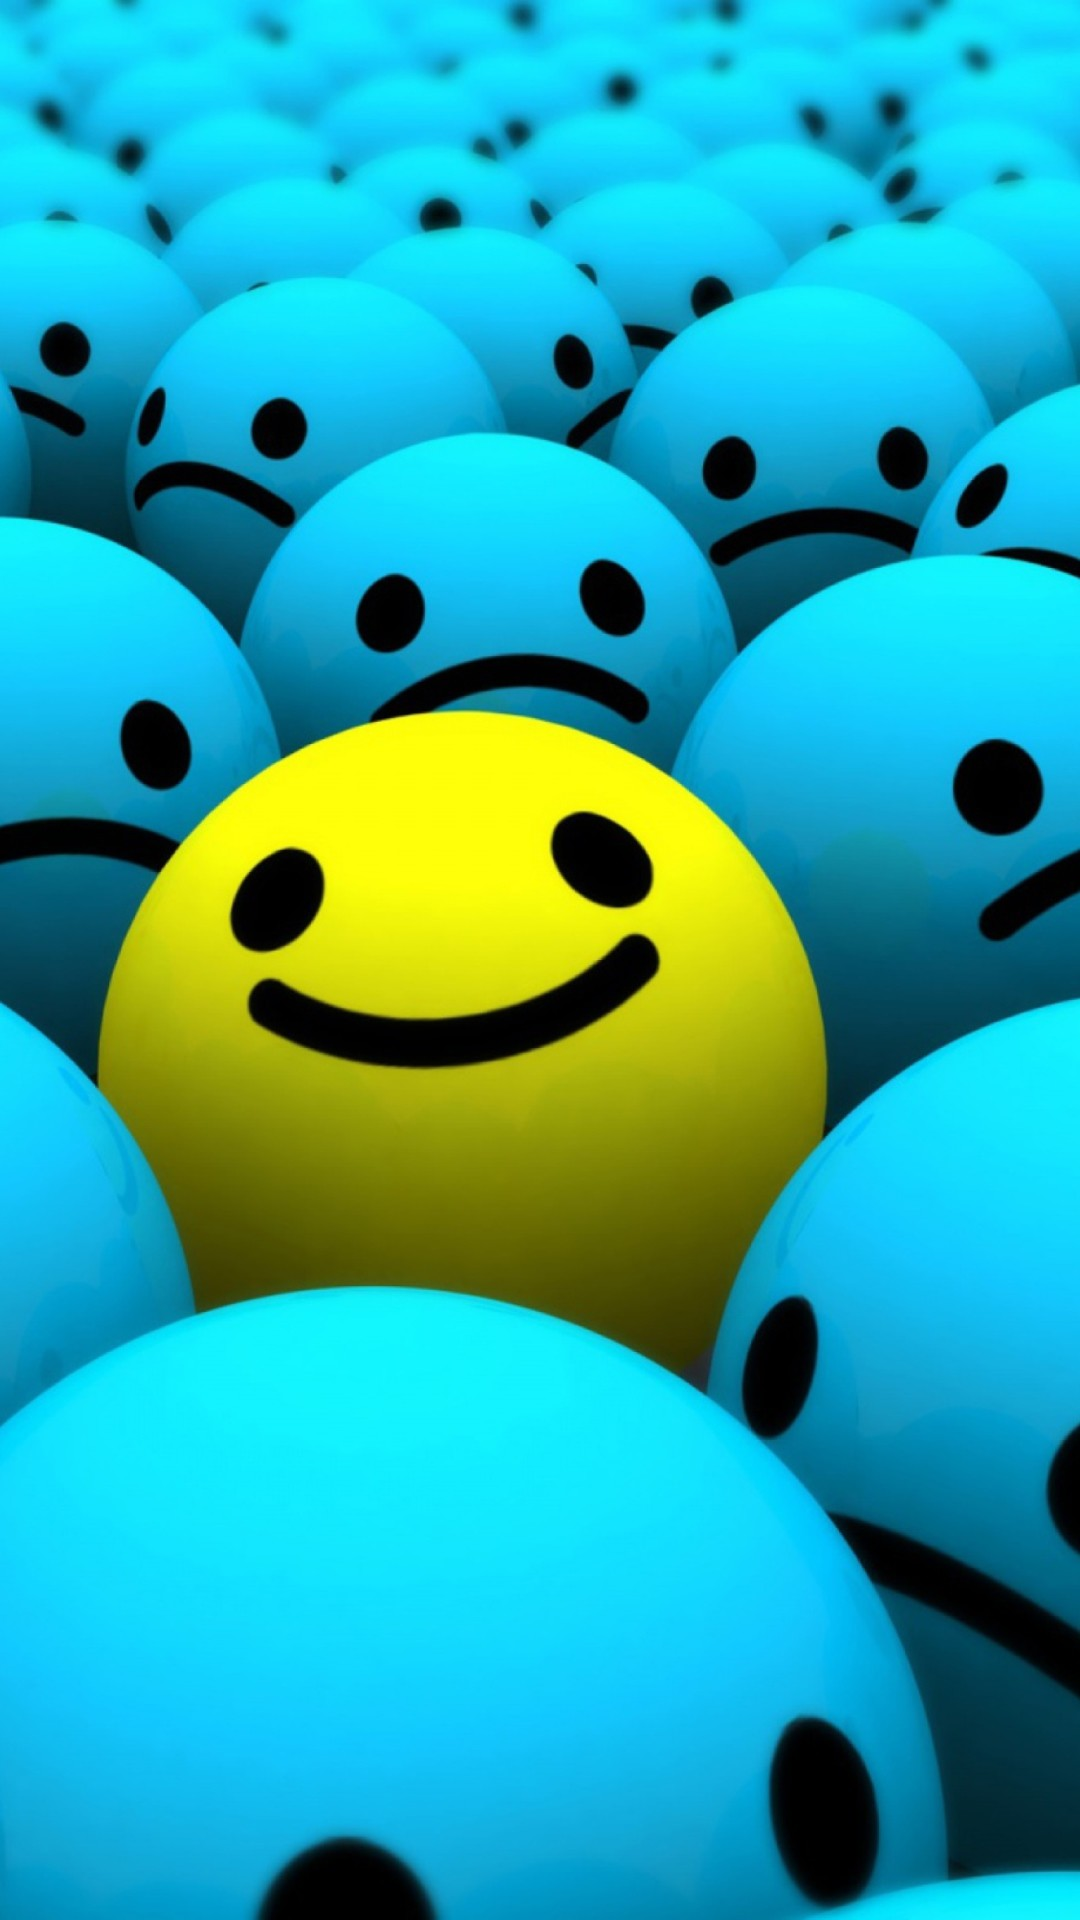 Hd Nirvana Wallpaper Smiley Faces Wallpaper 52 Images